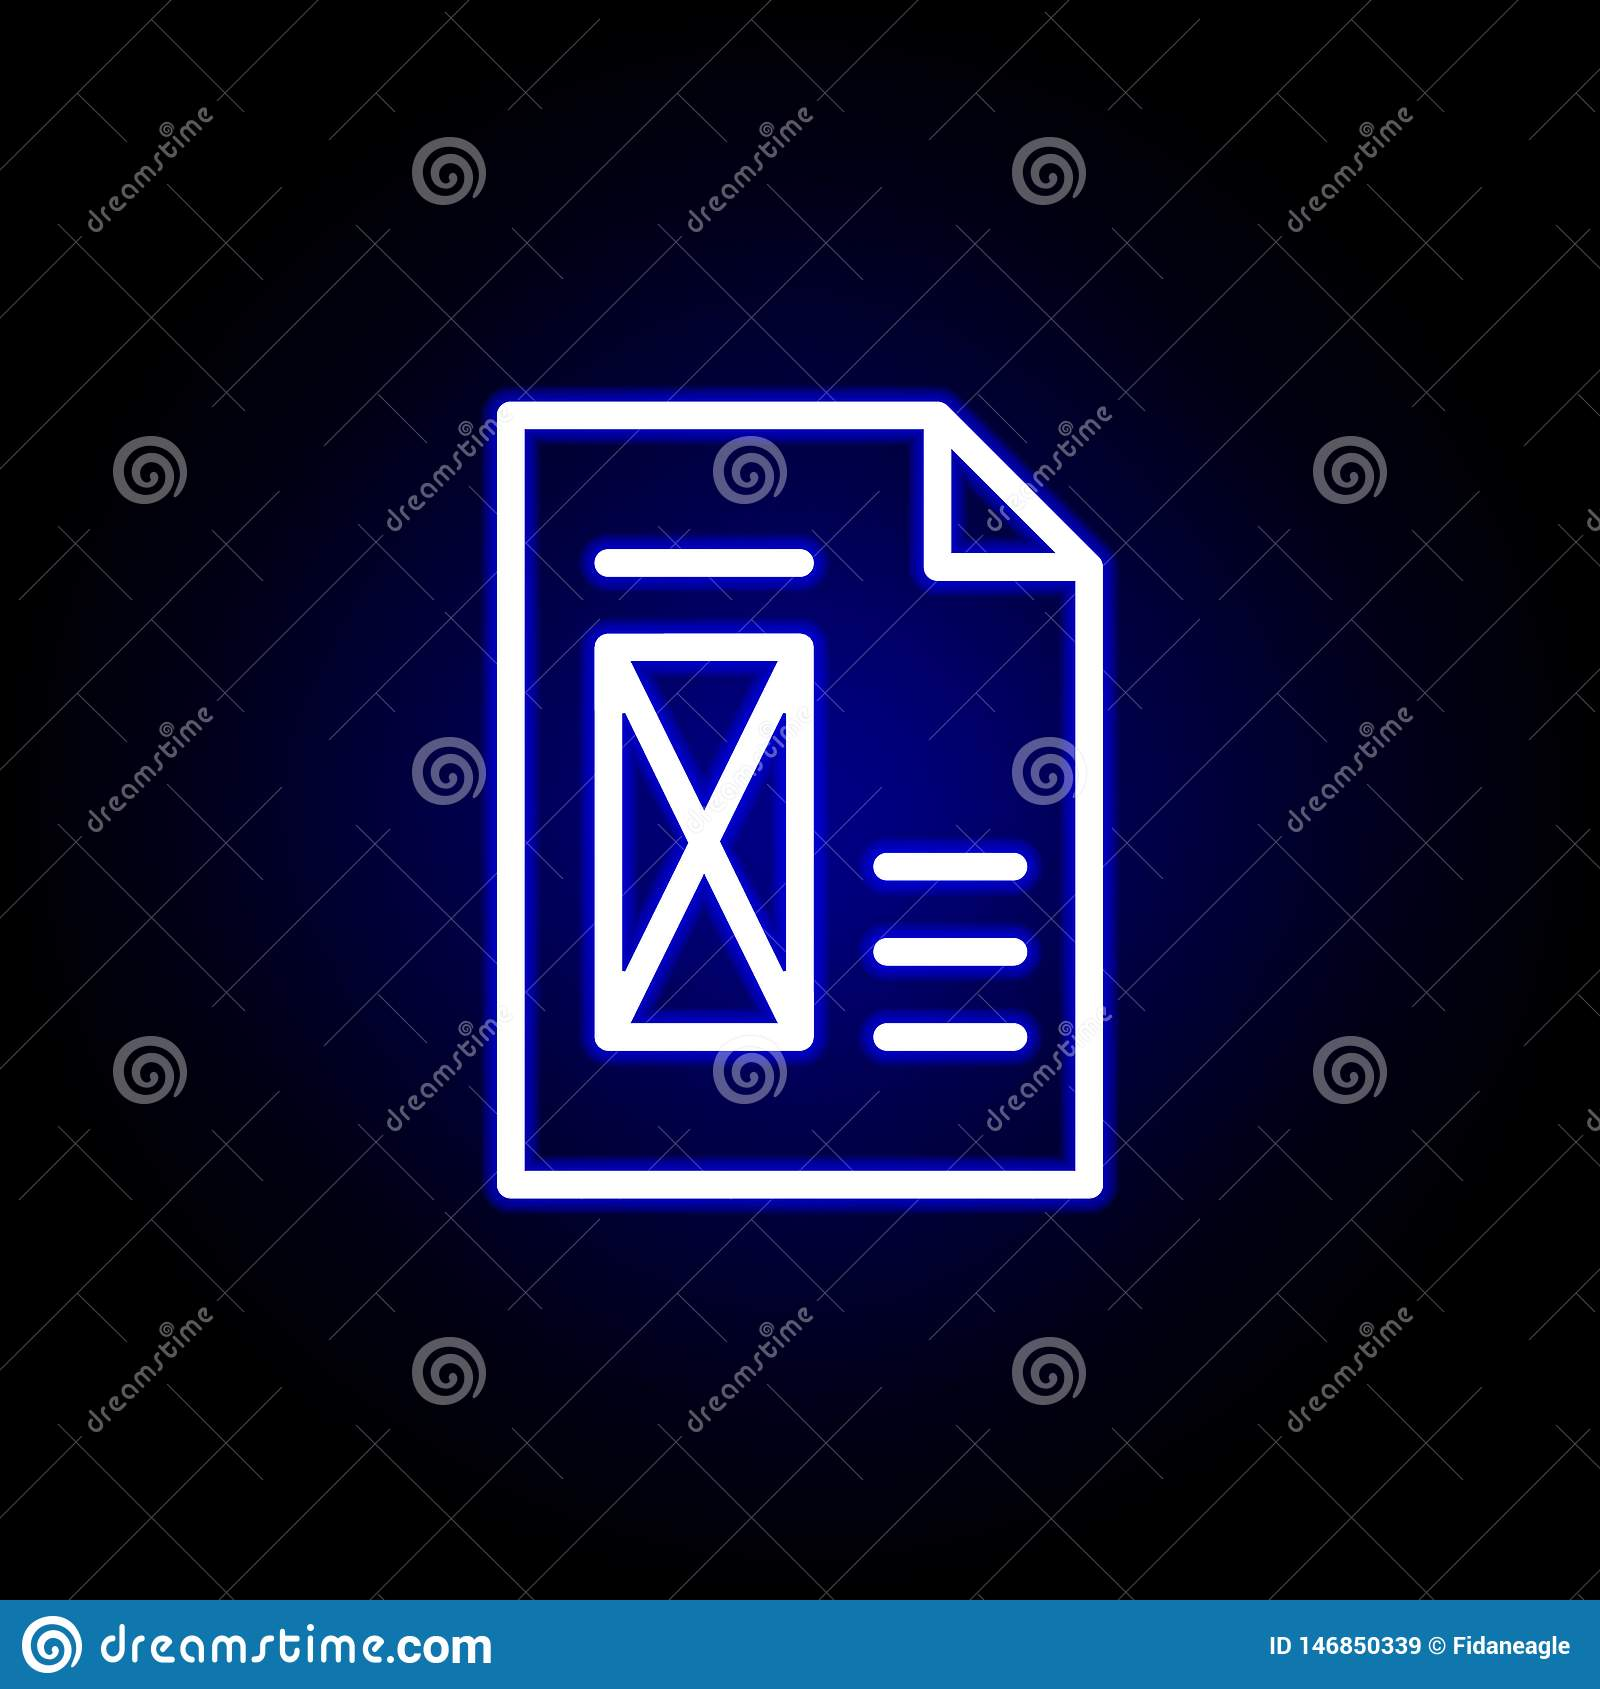 Page, Delete Icon In Neon Style  Can Be Used For Web, Logo, Mobile